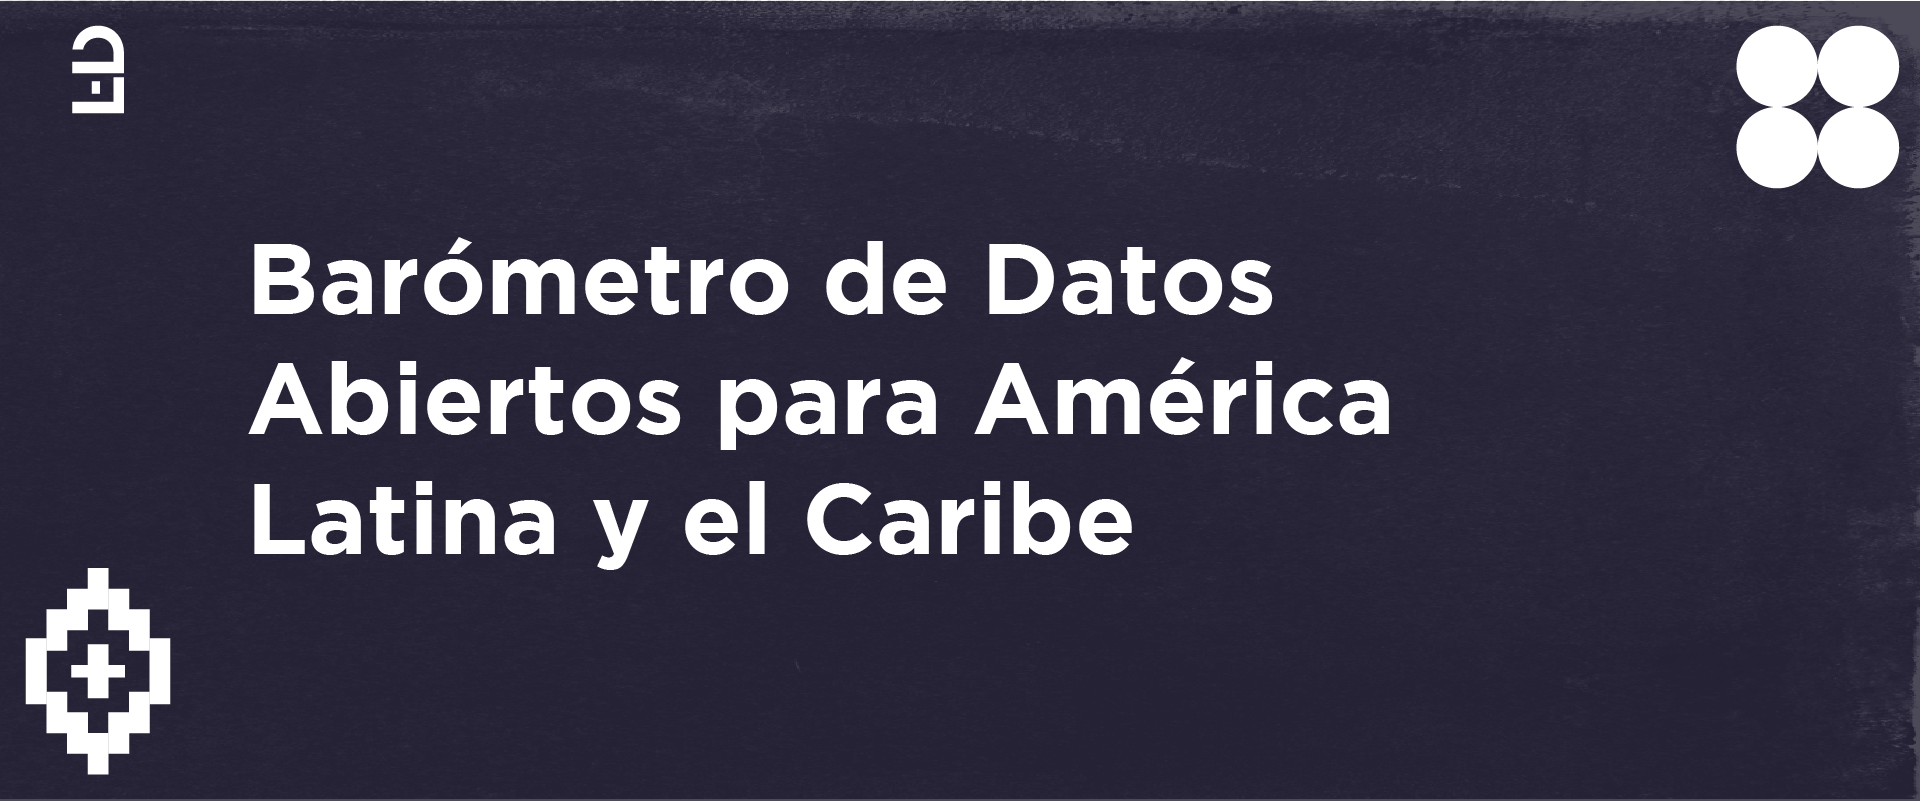 Lead Researchers call for the Open Data Barometer of Latin America and the Caribbean